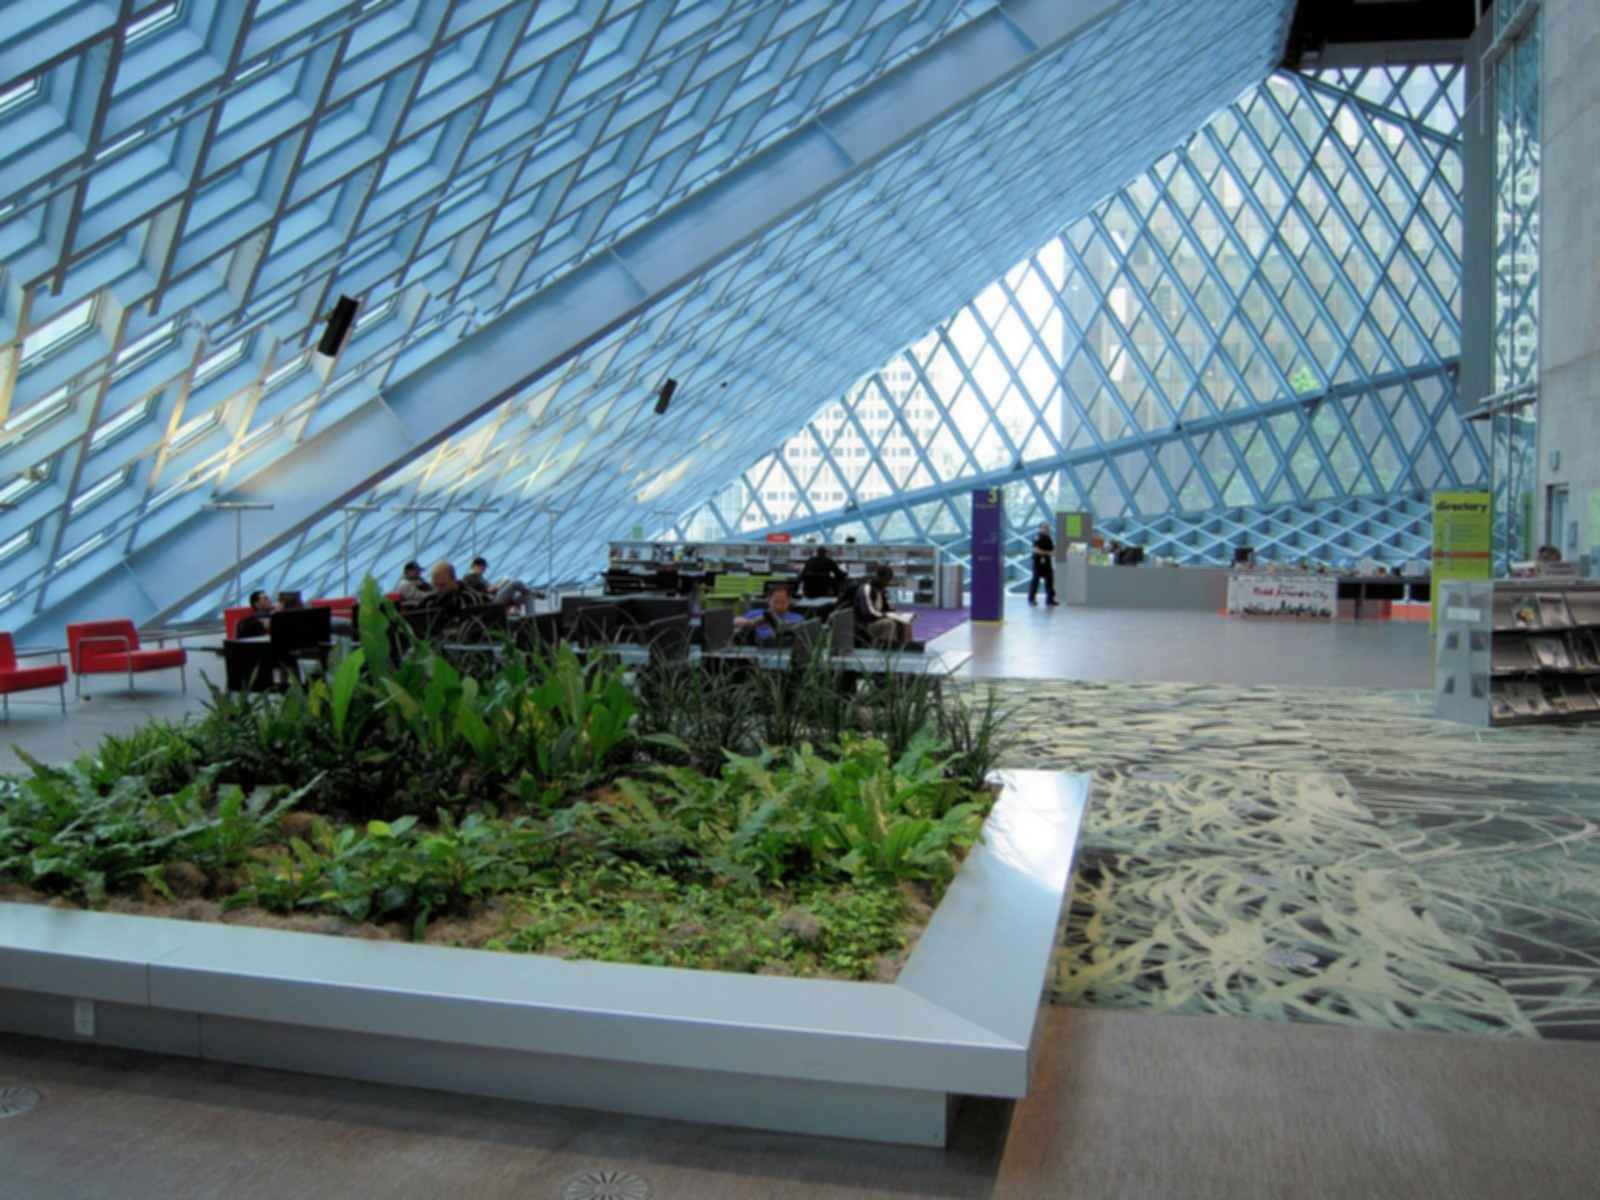 Seattle Central Library - Interior